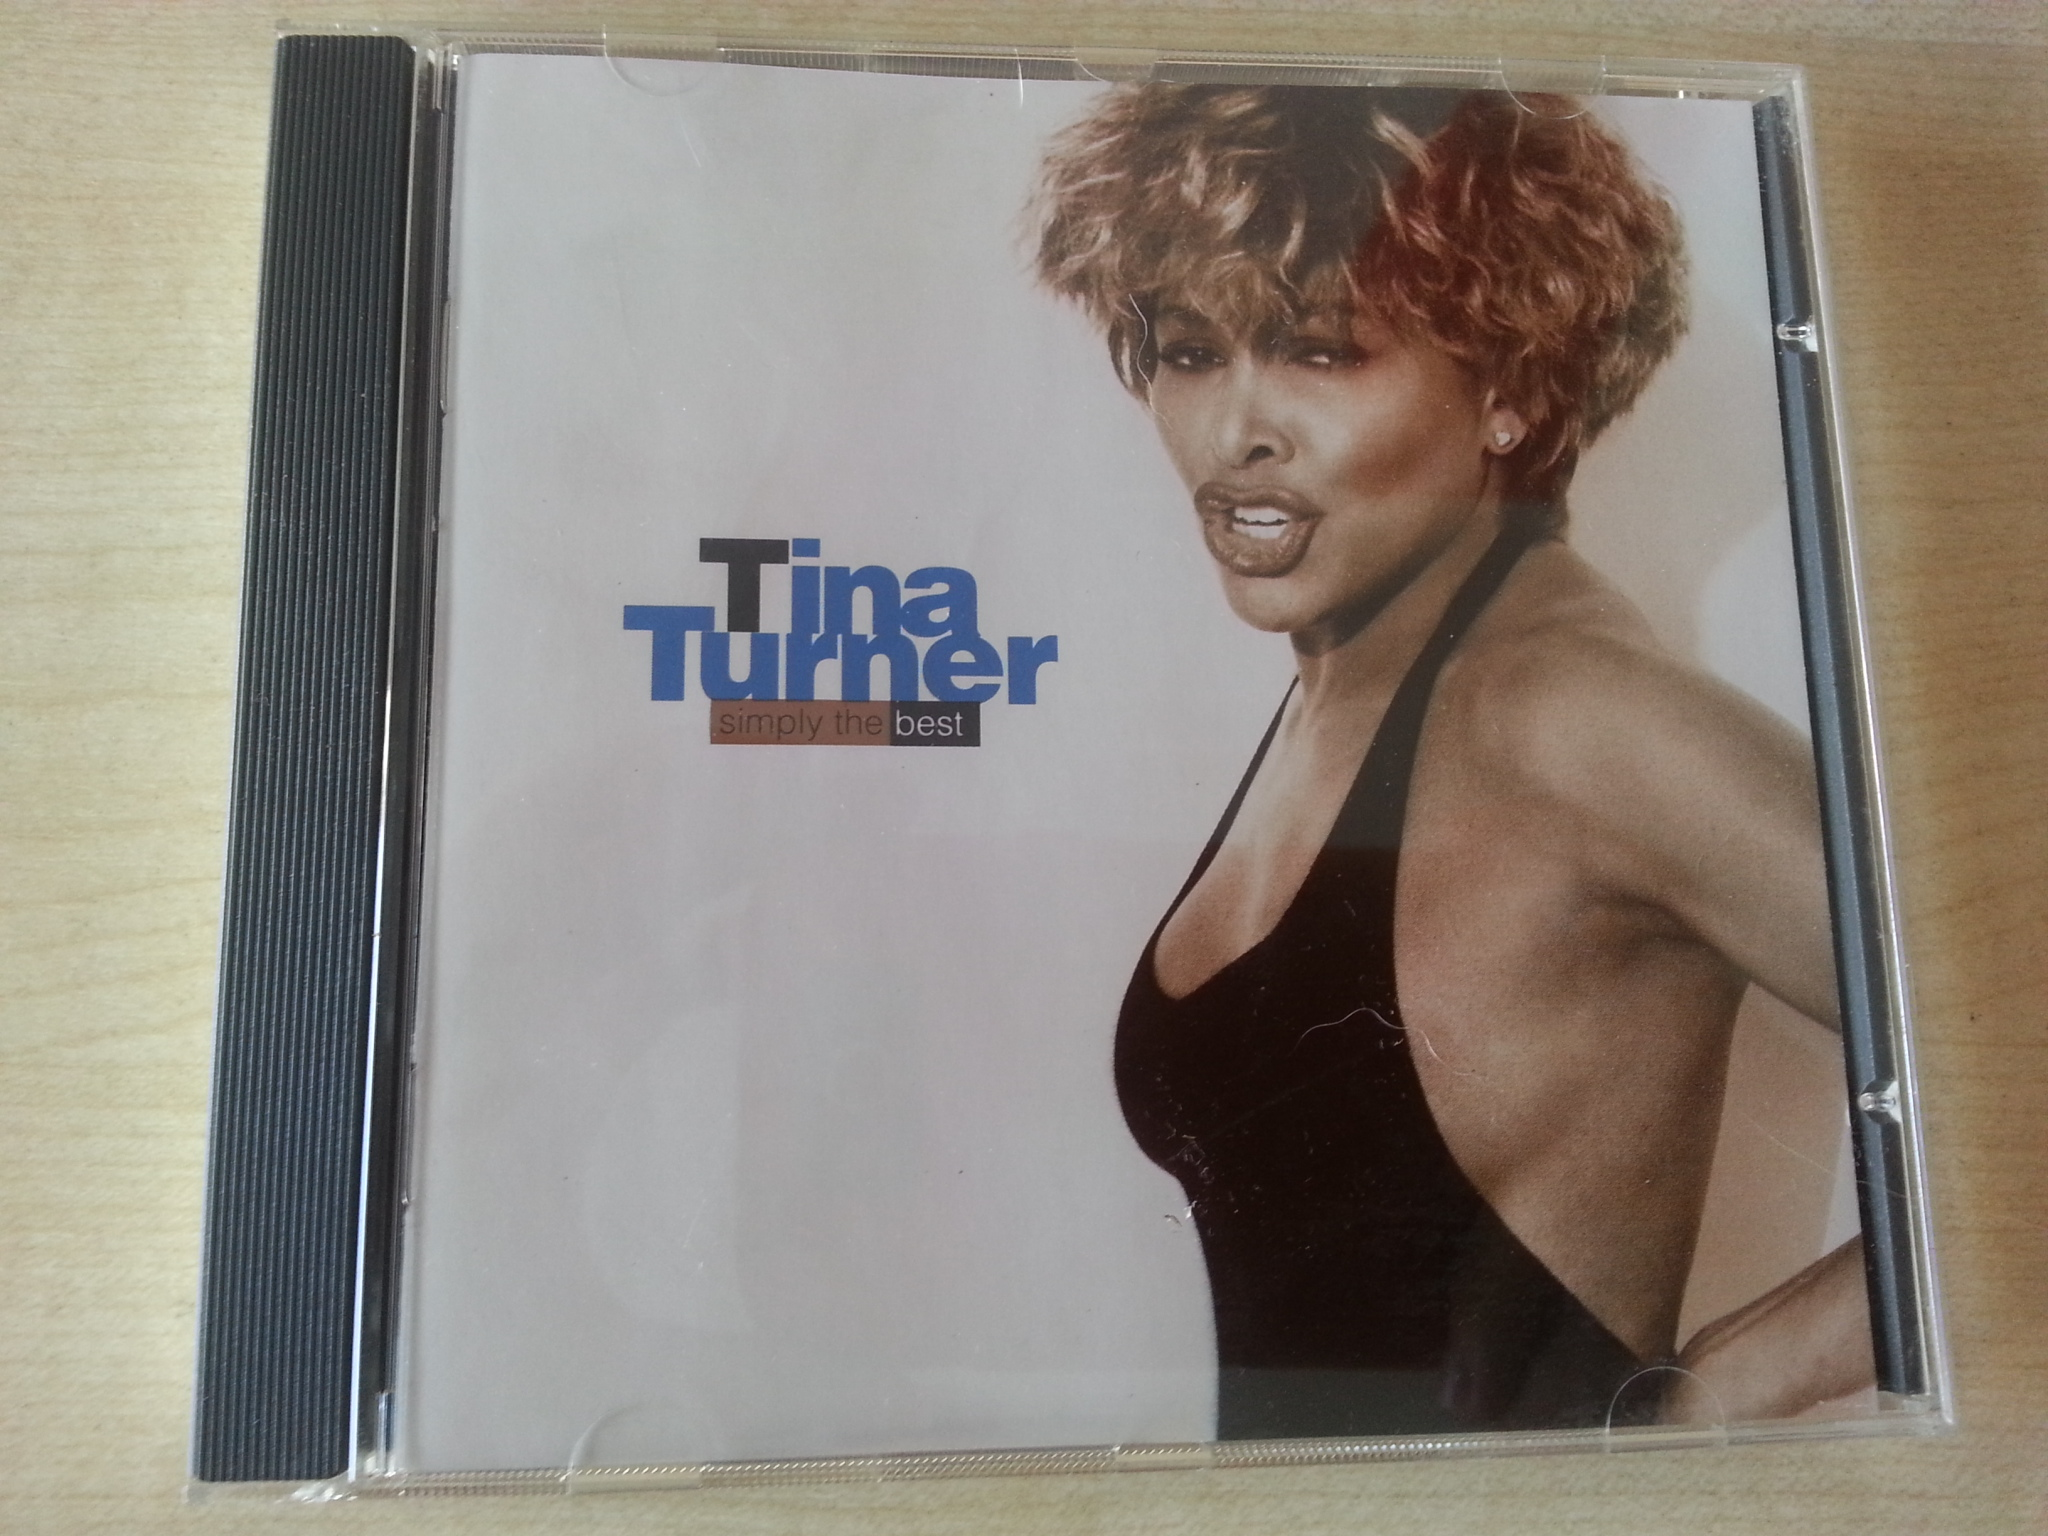 CD: Tina Turner - simply the best  kostenlos